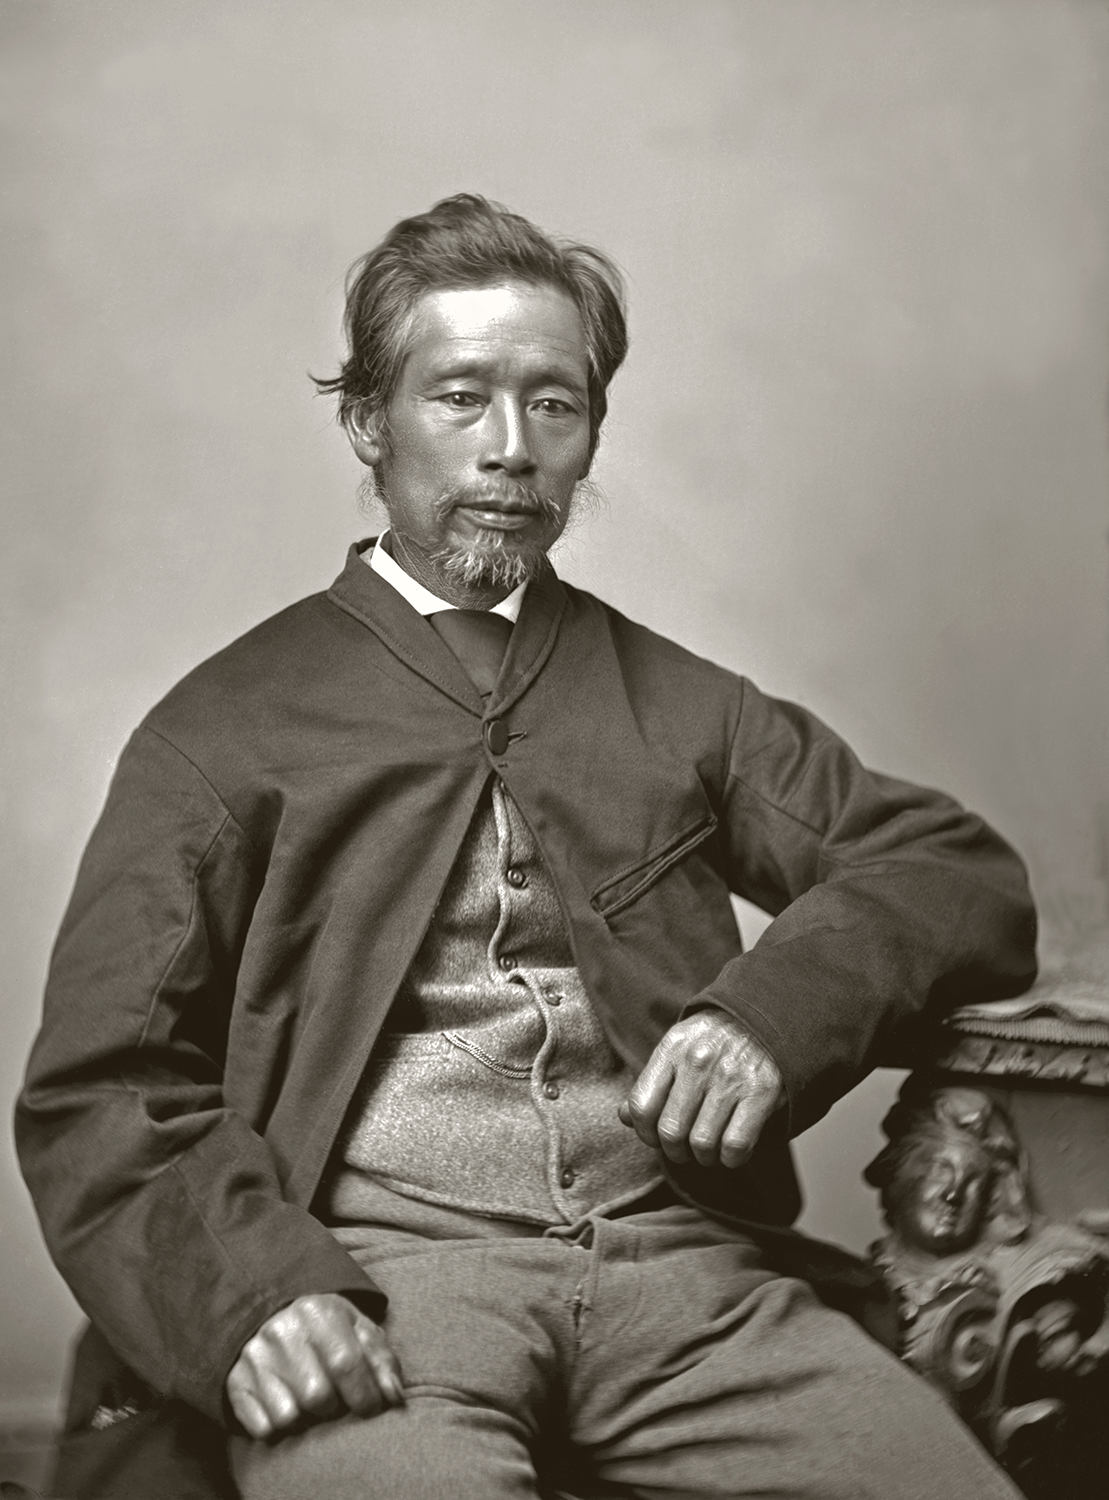 Image: Appo Hocton, the first Chinese New Zealander,1876. WE Brown Collection, Nelson Provincial Museum: 13043.